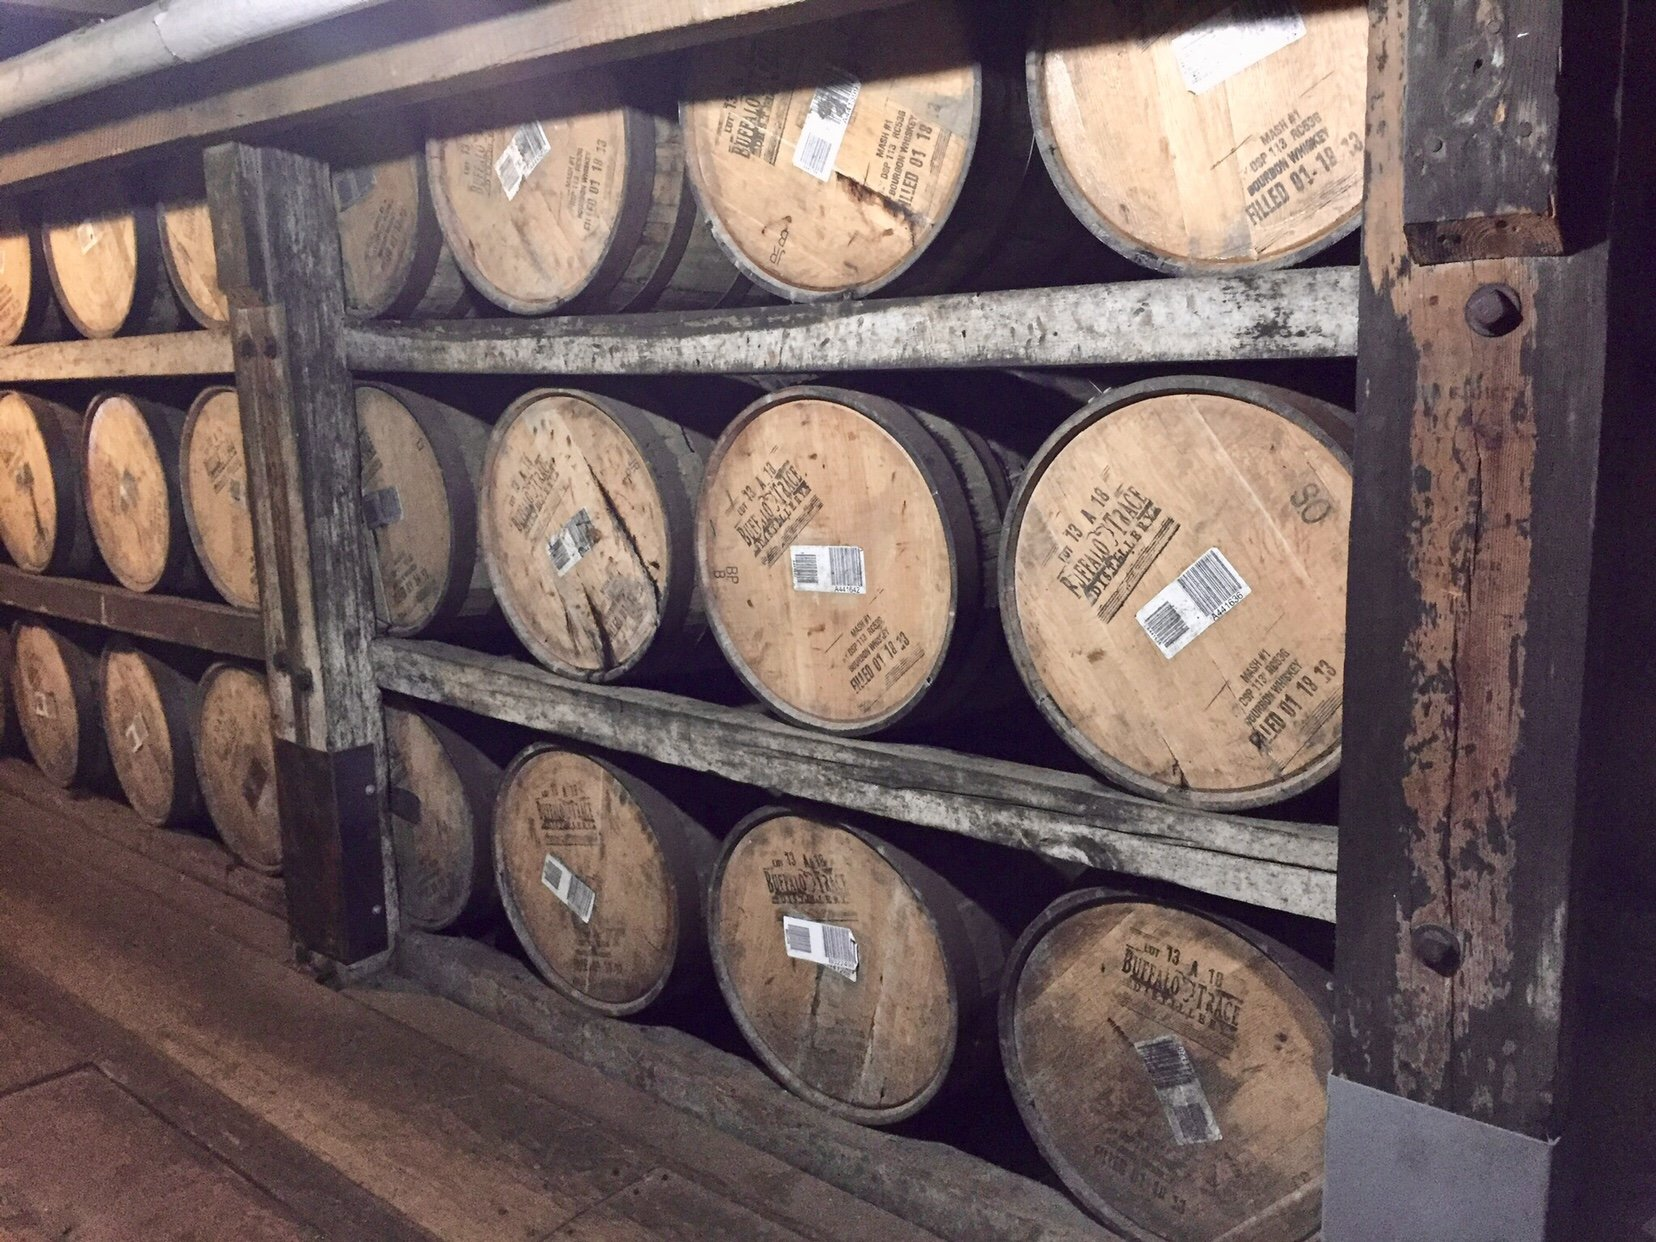 Barrels aging in Warehouse C | The OFC Distillery: a Taste of History at Buffalo Trace | www.herlifeinruins.com